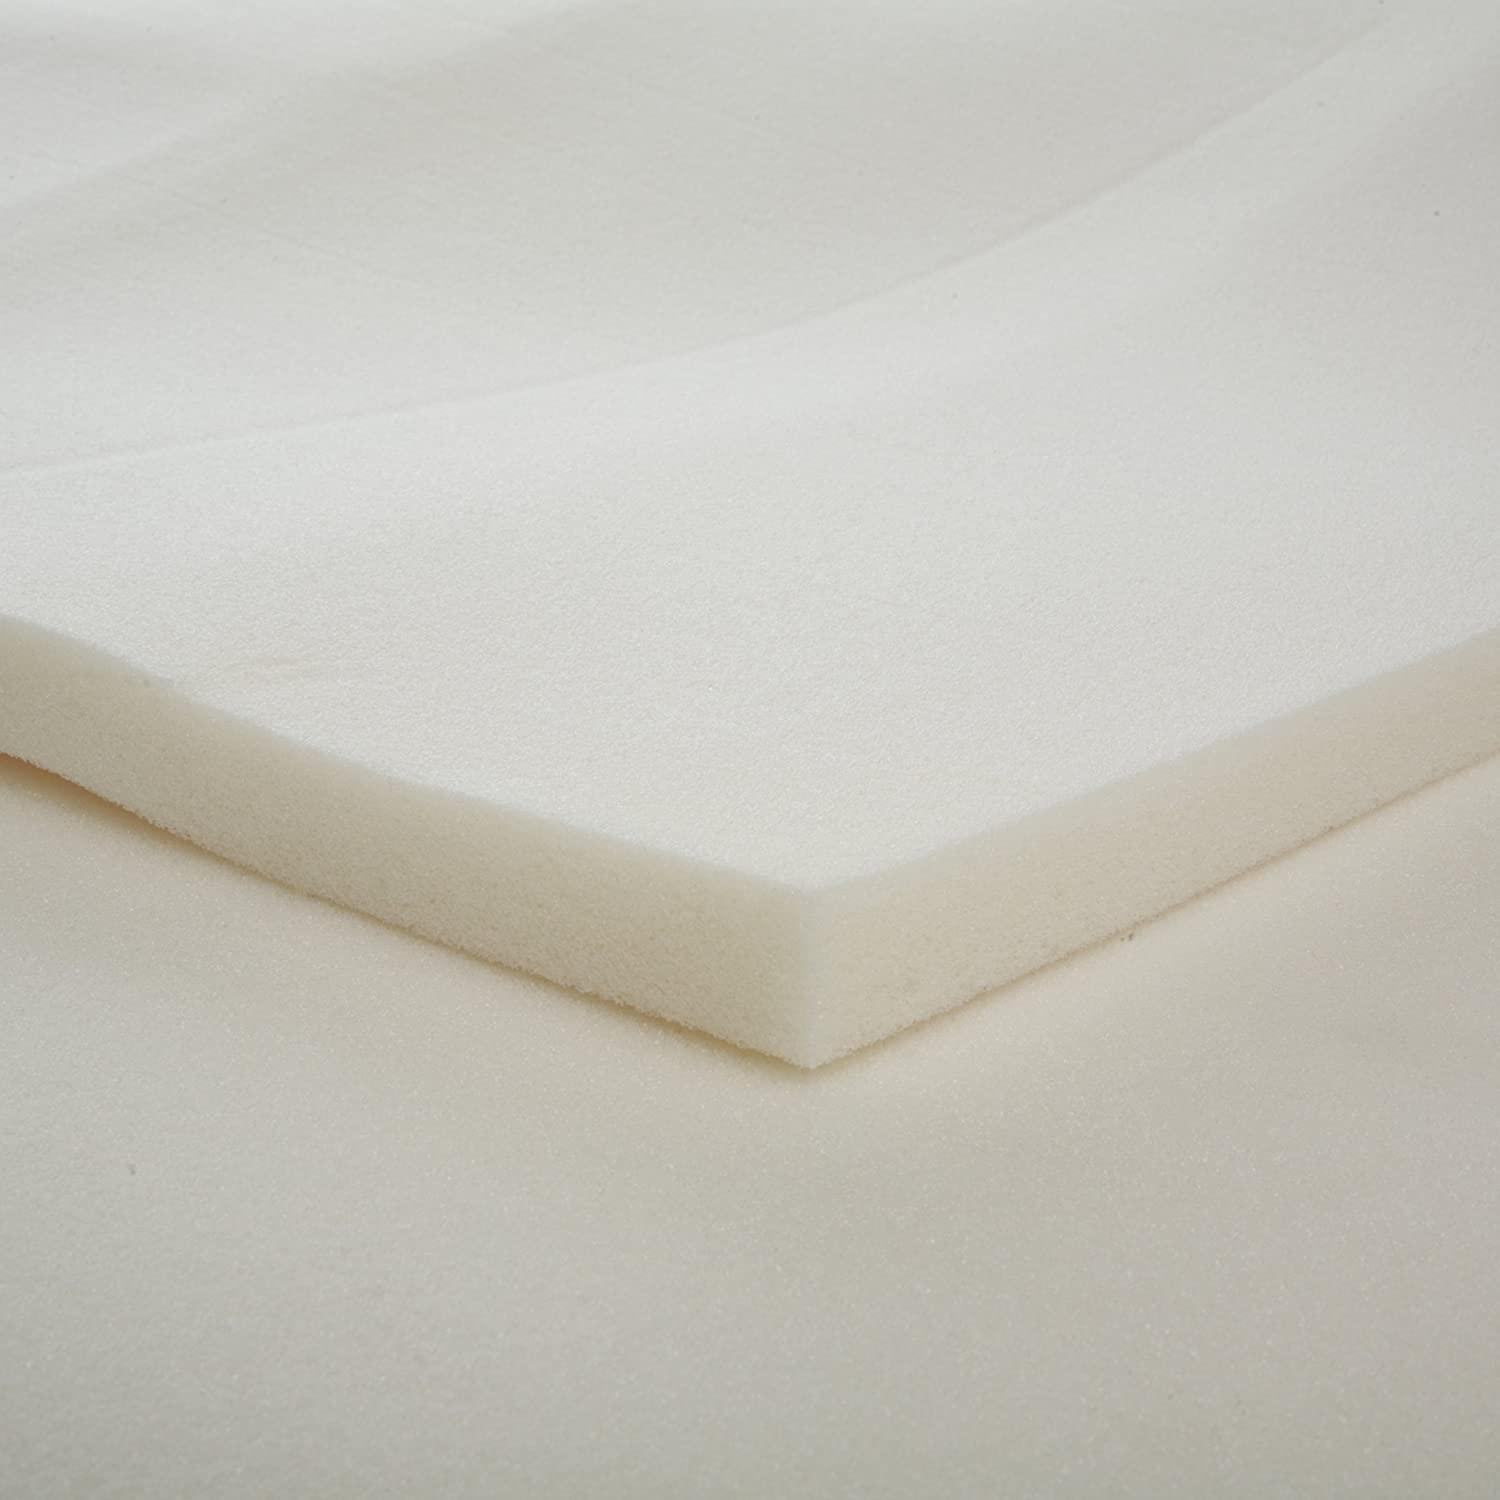 Amazon.com: 1-Inch Slab Memory Foam Mattress Topper, Full: Home & Kitchen - Amazon.com: 1-Inch Slab Memory Foam Mattress Topper, Full: Home